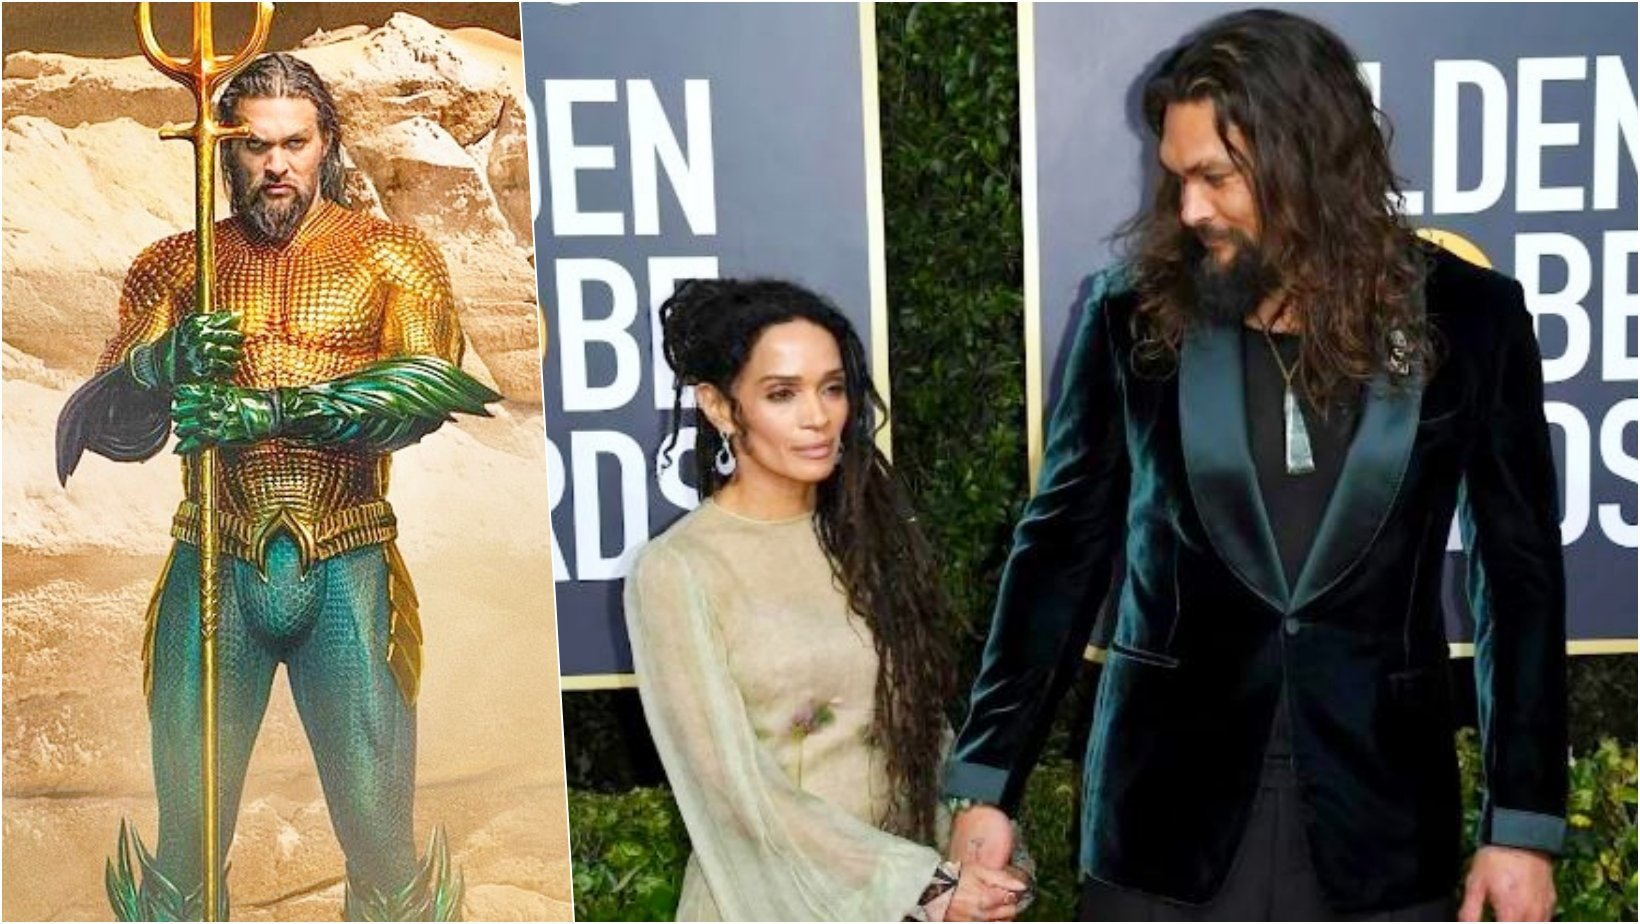 6 facebook cover 9.jpg?resize=412,232 - Despite The Tough Look, Jason Momoa Reveals That He's Absolutely Terrified Of His Wife